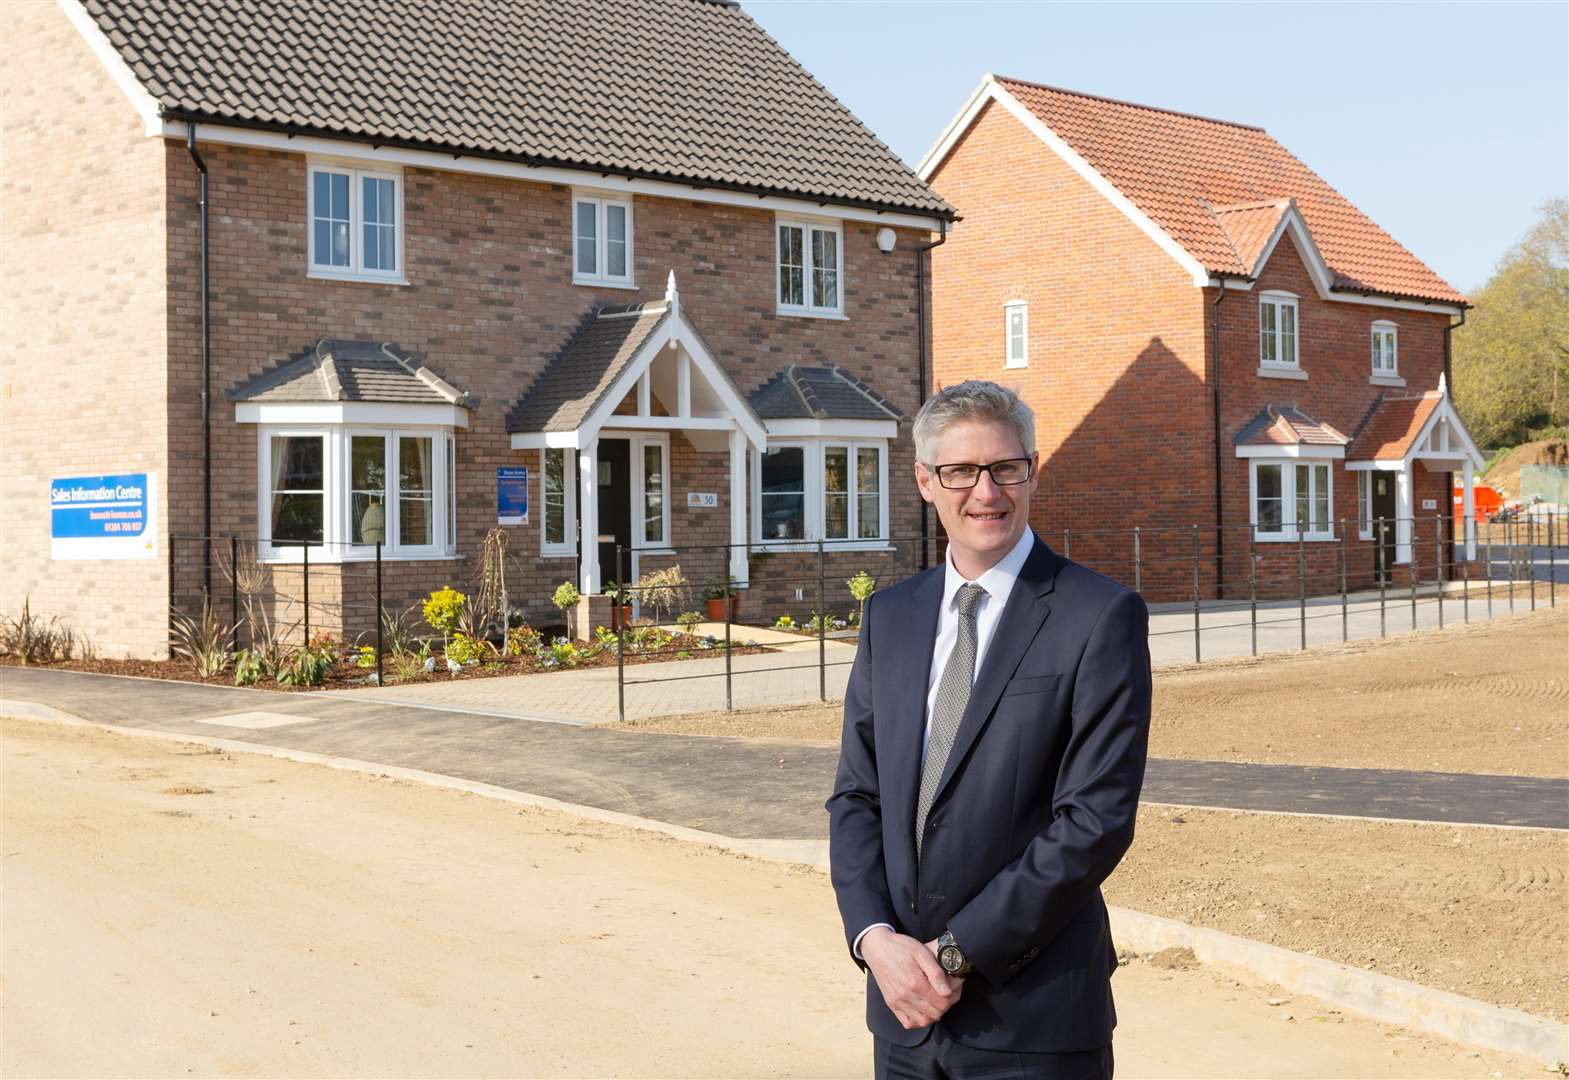 Housebuilding firm's optimism for year ahead